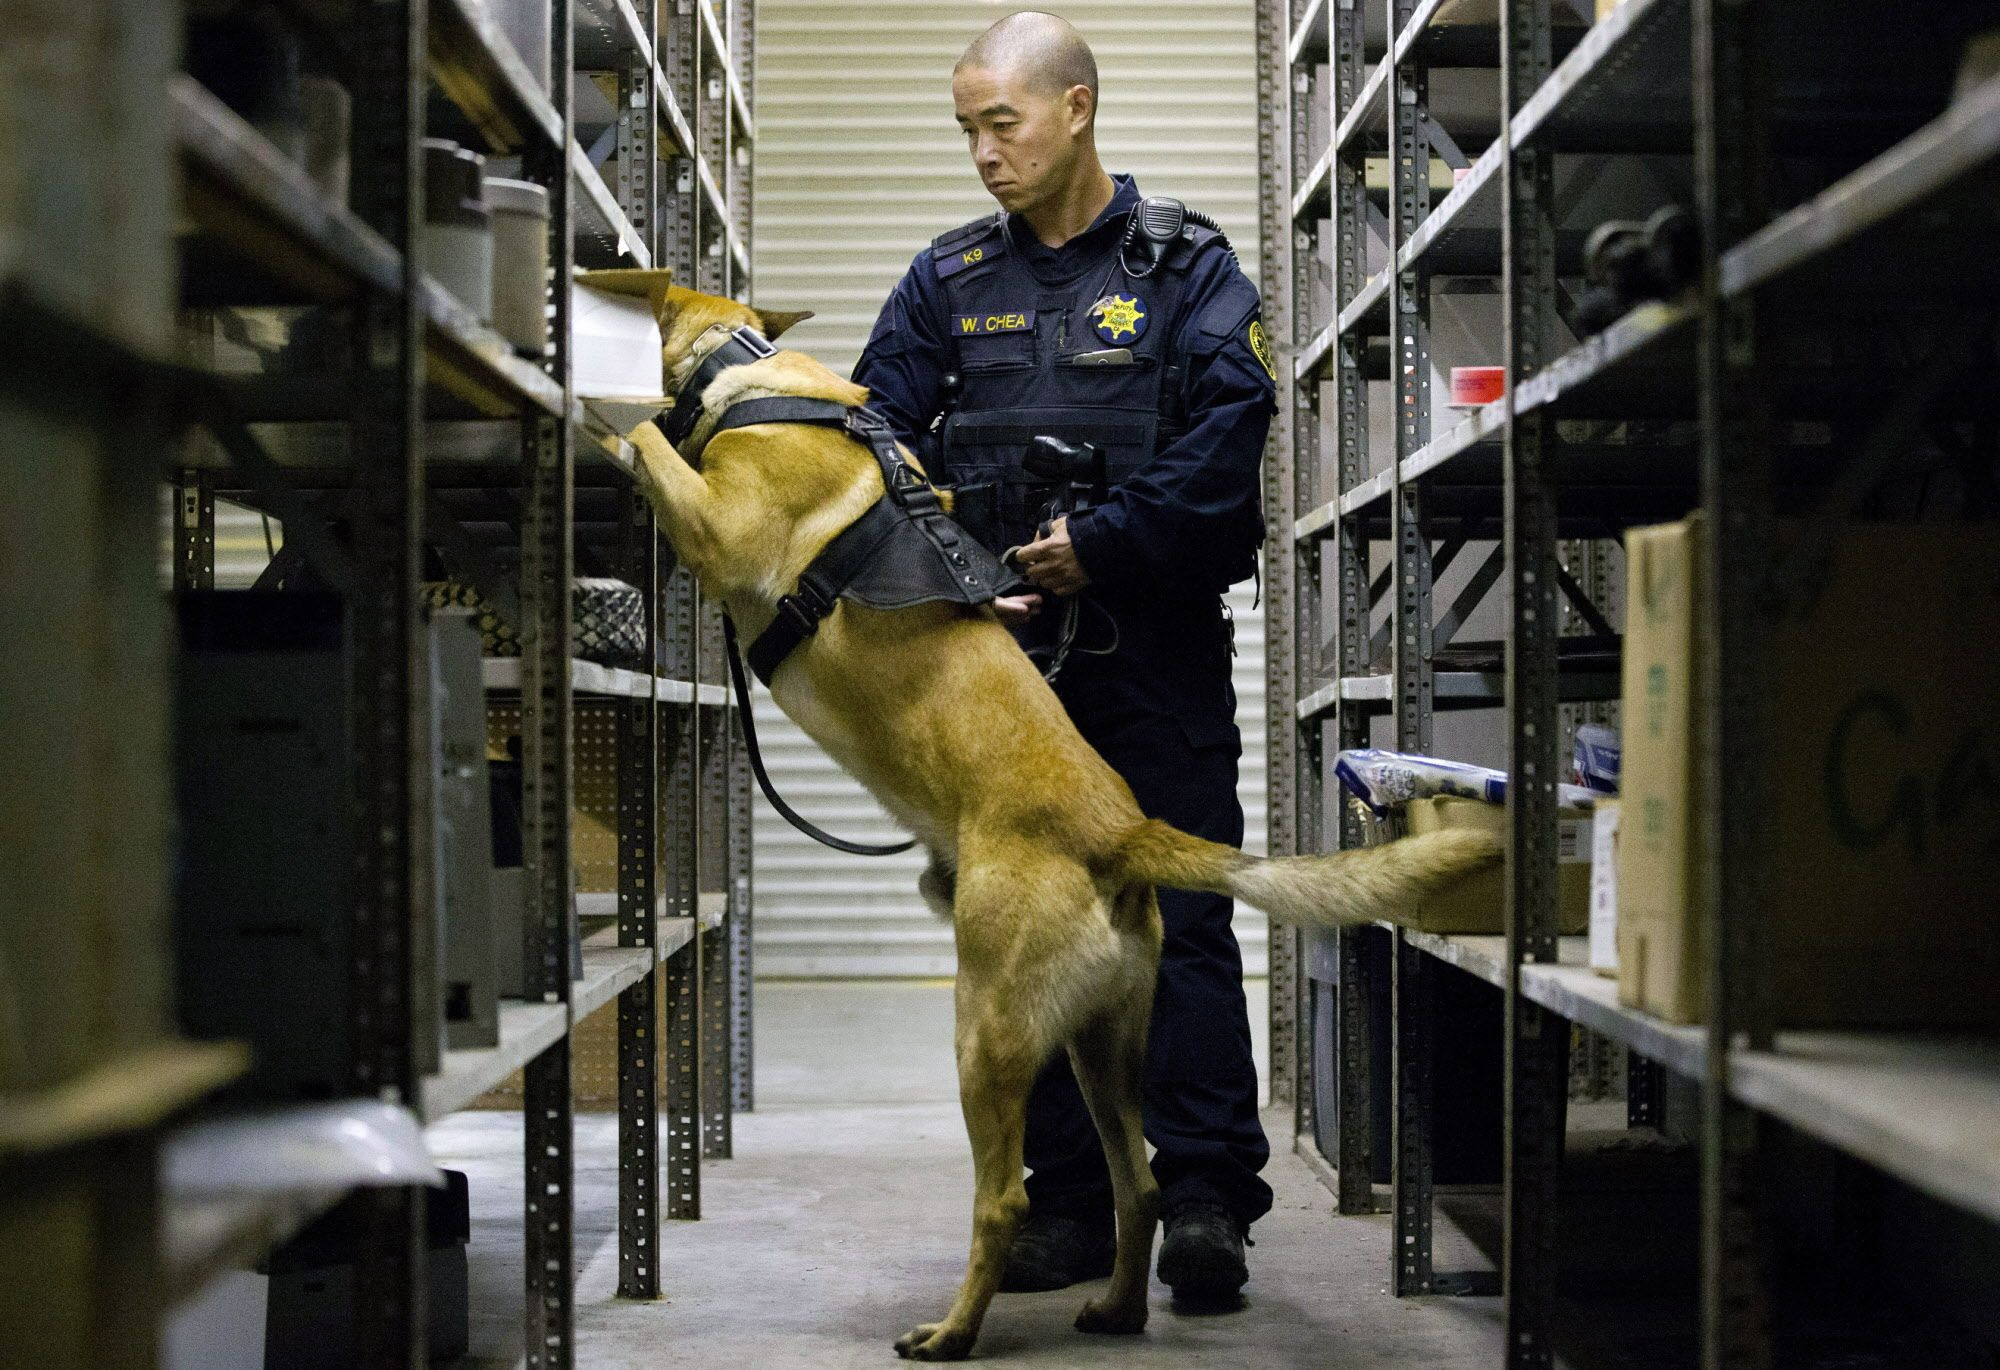 Alameda County sheriff's deputy Wesley Chea and his dog Denny search for drugs during narcotics K-9 training at the Oakland International Airport on Thursday, May 11, 2017, in Oakland, Calif. The dogs and the handlers are training to spot many types of drugs, excluding marijuana. Amid legalization of marijuana, California's current pot-sniffing K-9s face retirement.